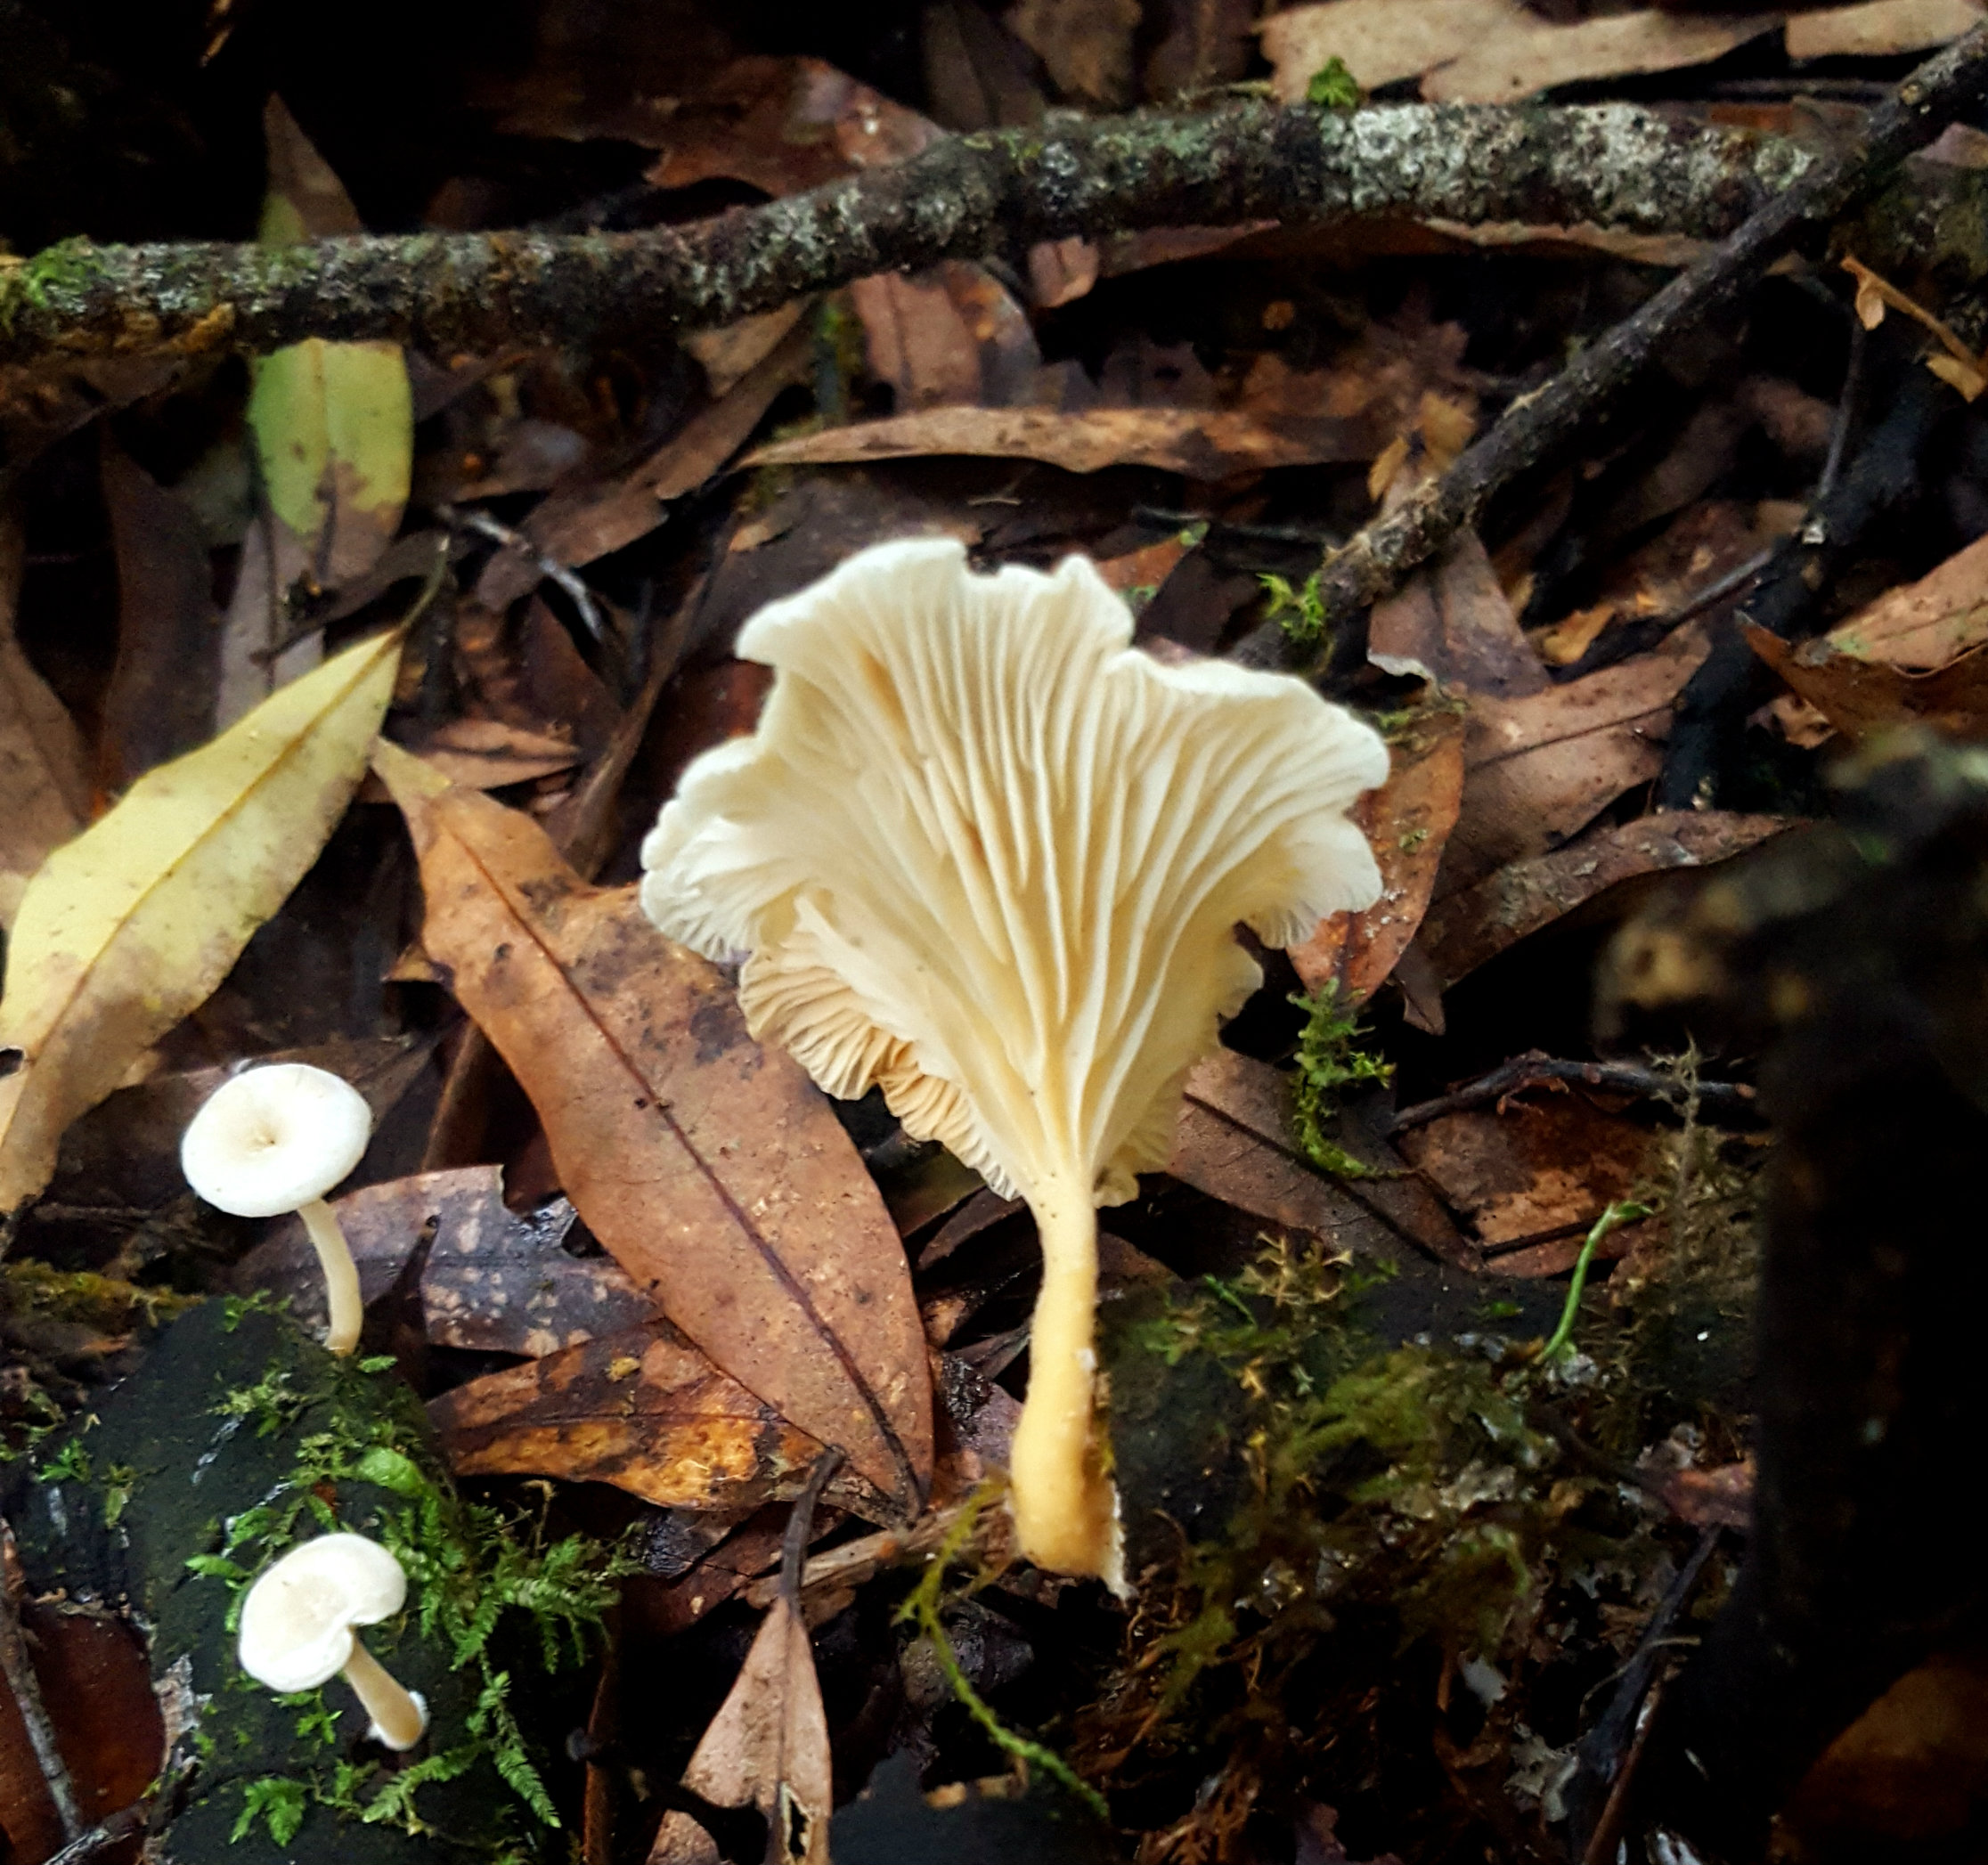 a white mushroom wuth frilly gills seen from below nestled amongst autumn leaves and three smaller mushrooms